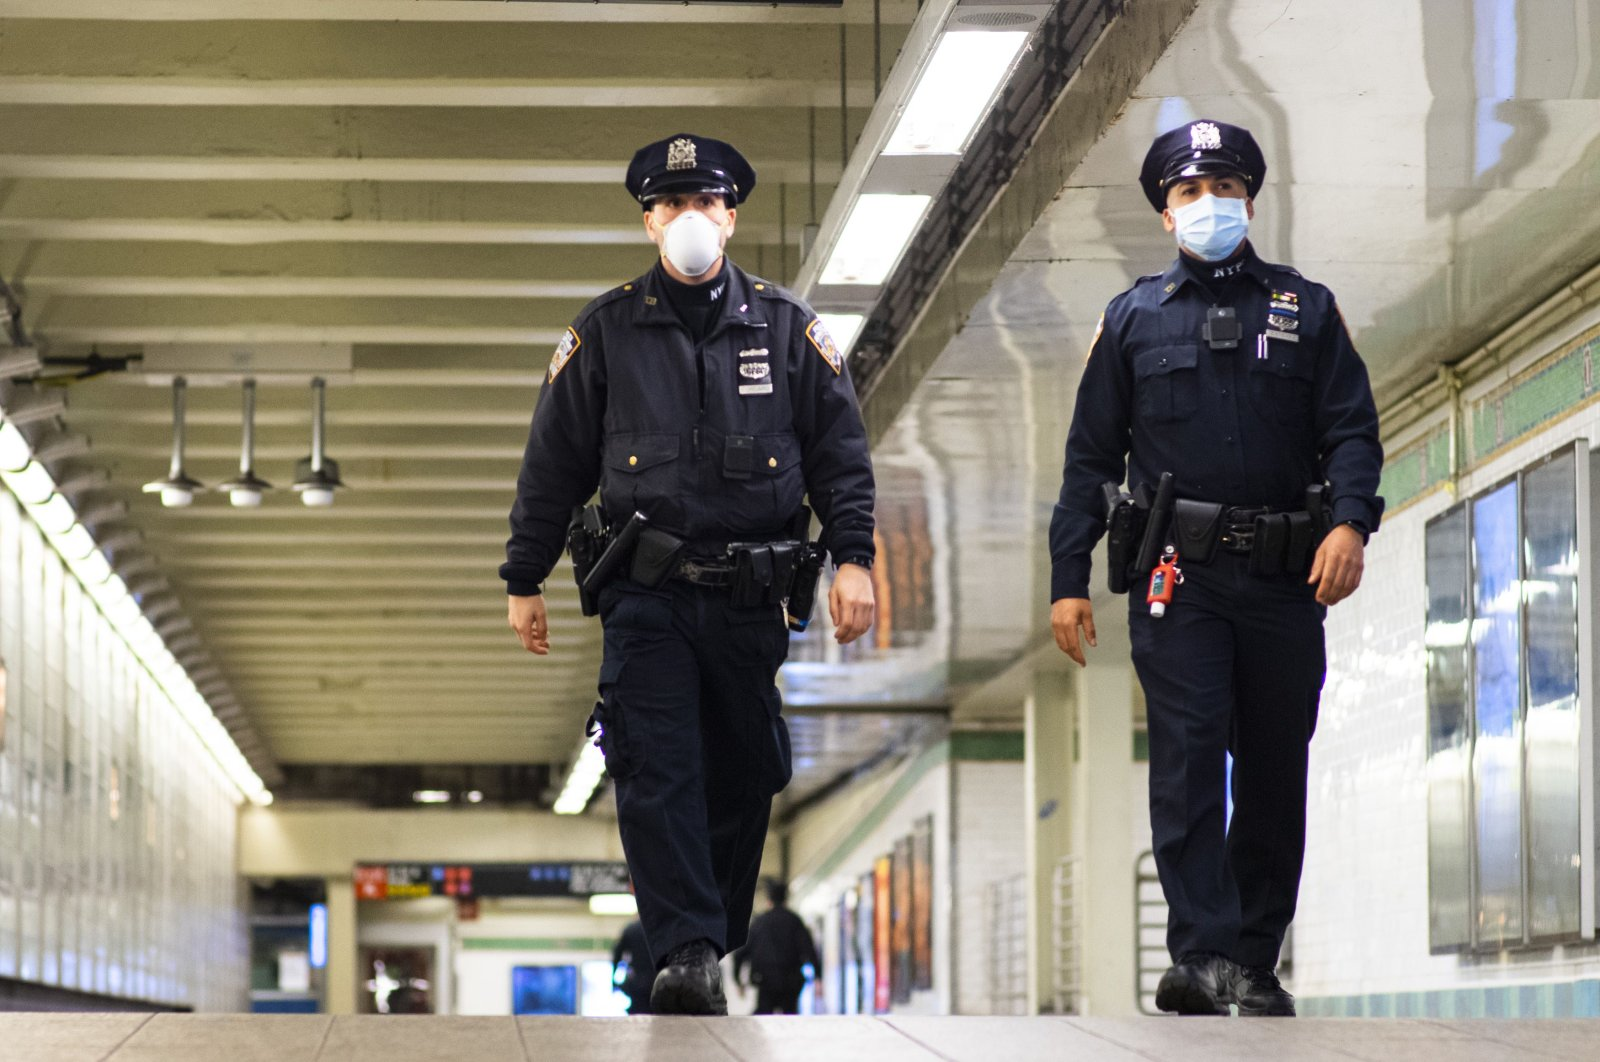 New York Police Department (NYPD) officers patrol inside Times Square station, New York City, New York, U.S., May 6, 2020. (AFP Photo)